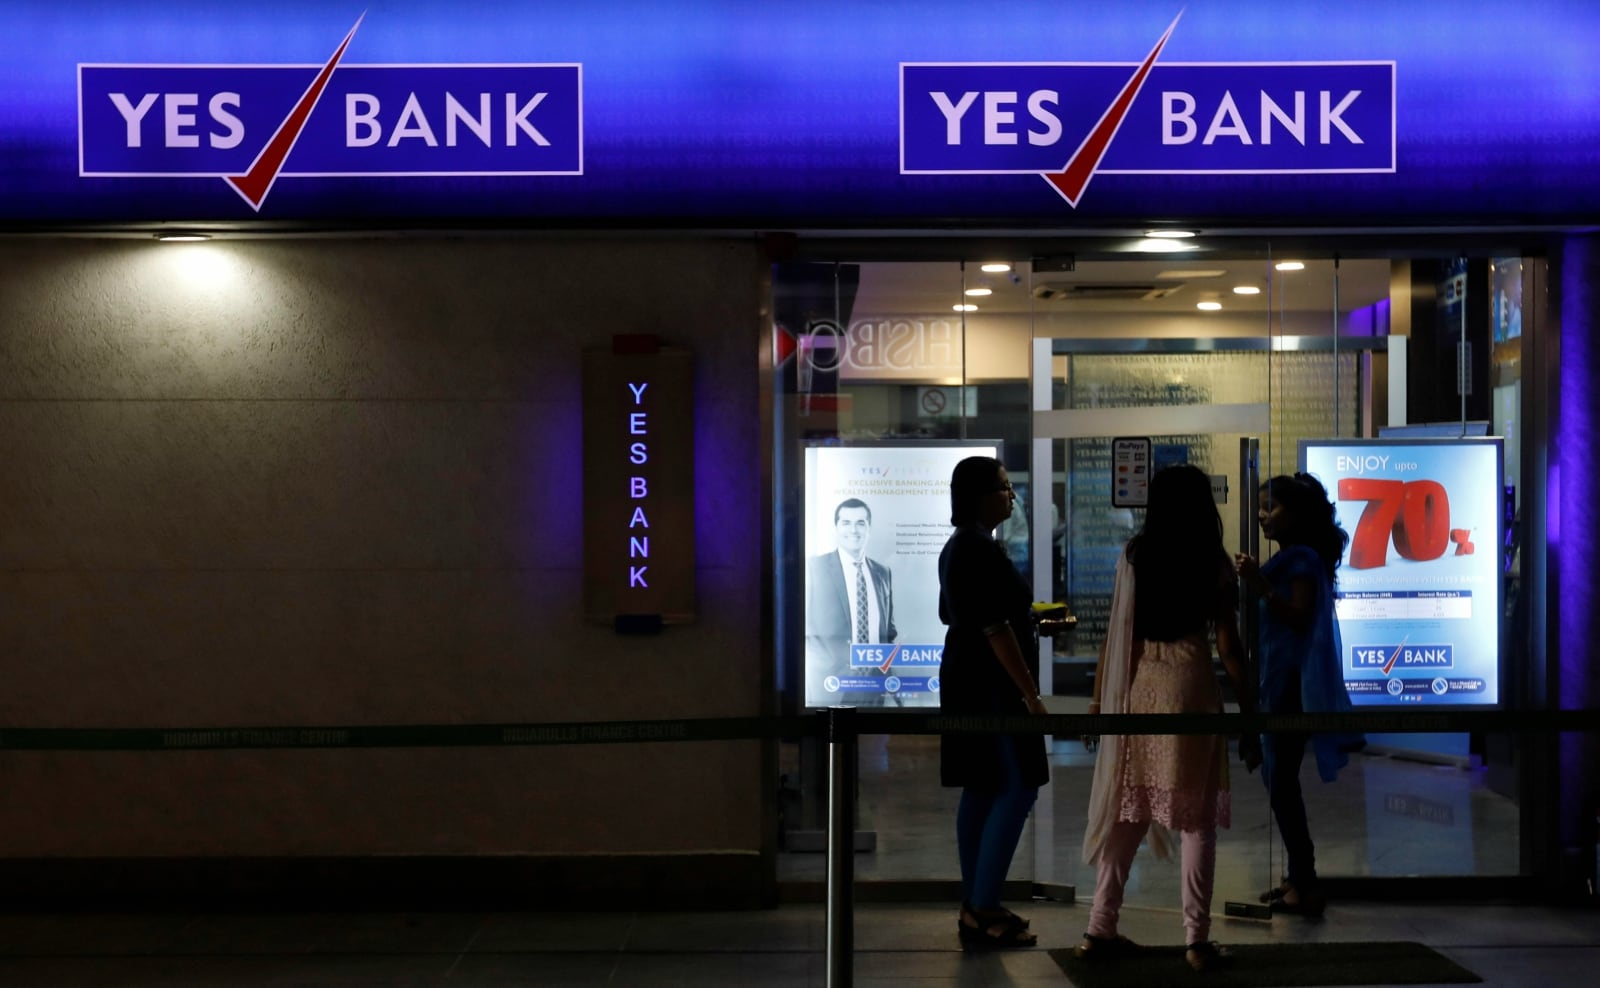 Yes Bank: Deutsche Bank India CEO Ravneet Gill is in race with Rajat Monga to take over Rana Kapoor's position at Yes Bank, ET Now reported quoting sources. (Picture credits: Reuters)